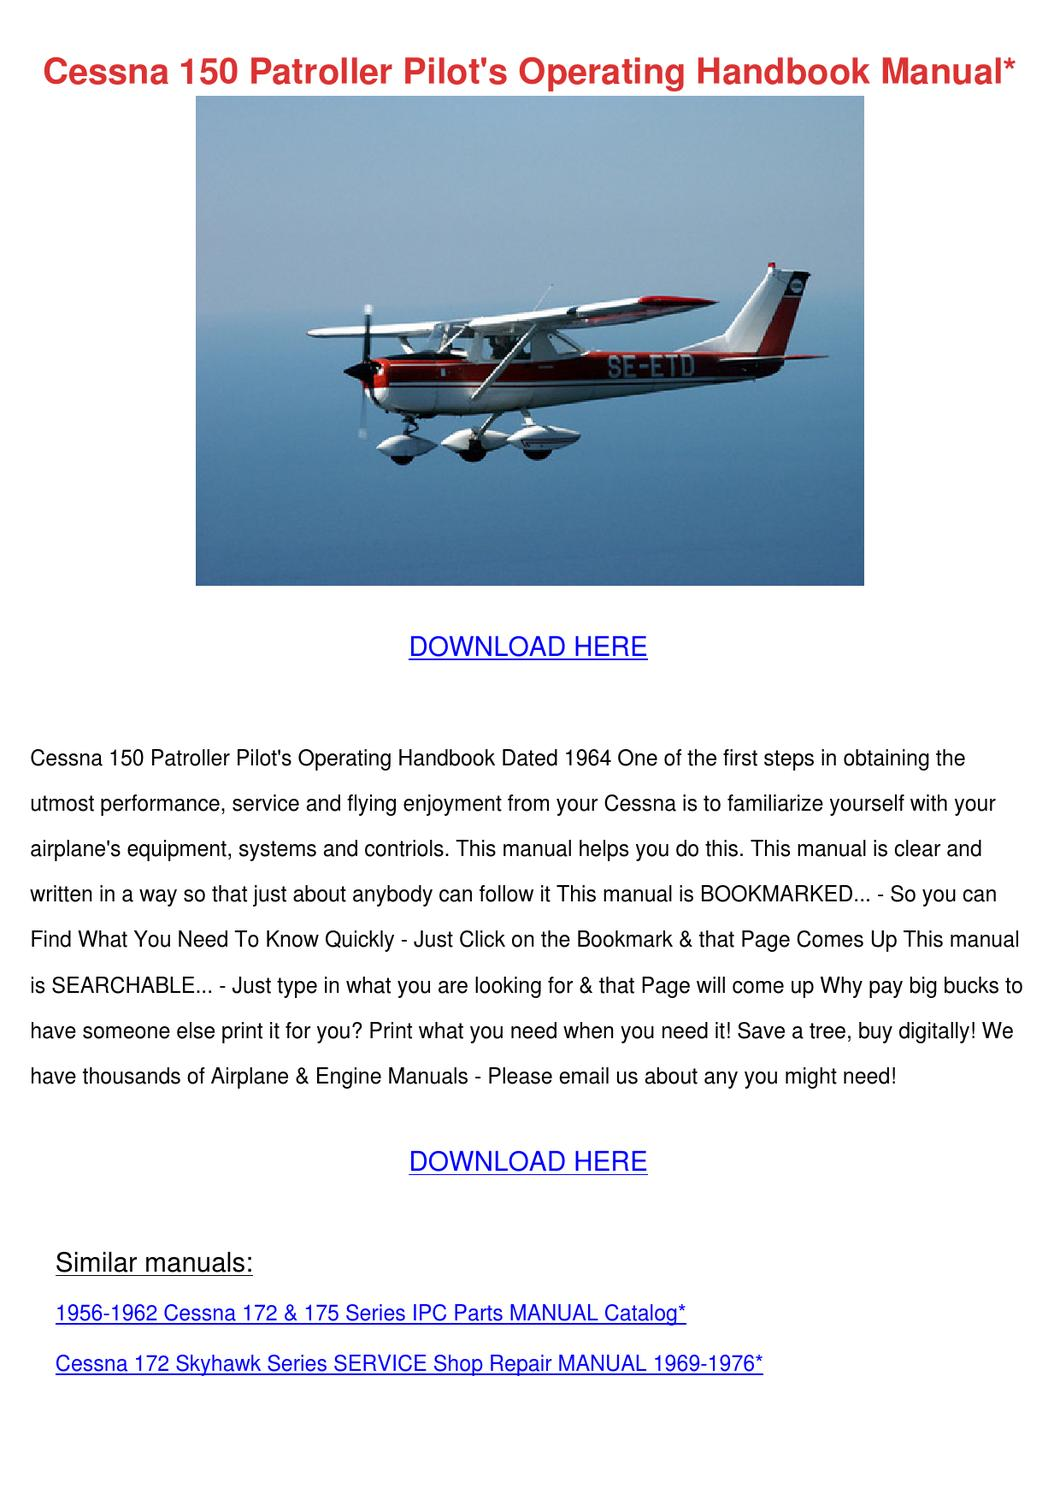 Cessna 150 Patroller Pilots Operating Handboo by Nicolle Waldenmyer - issuu